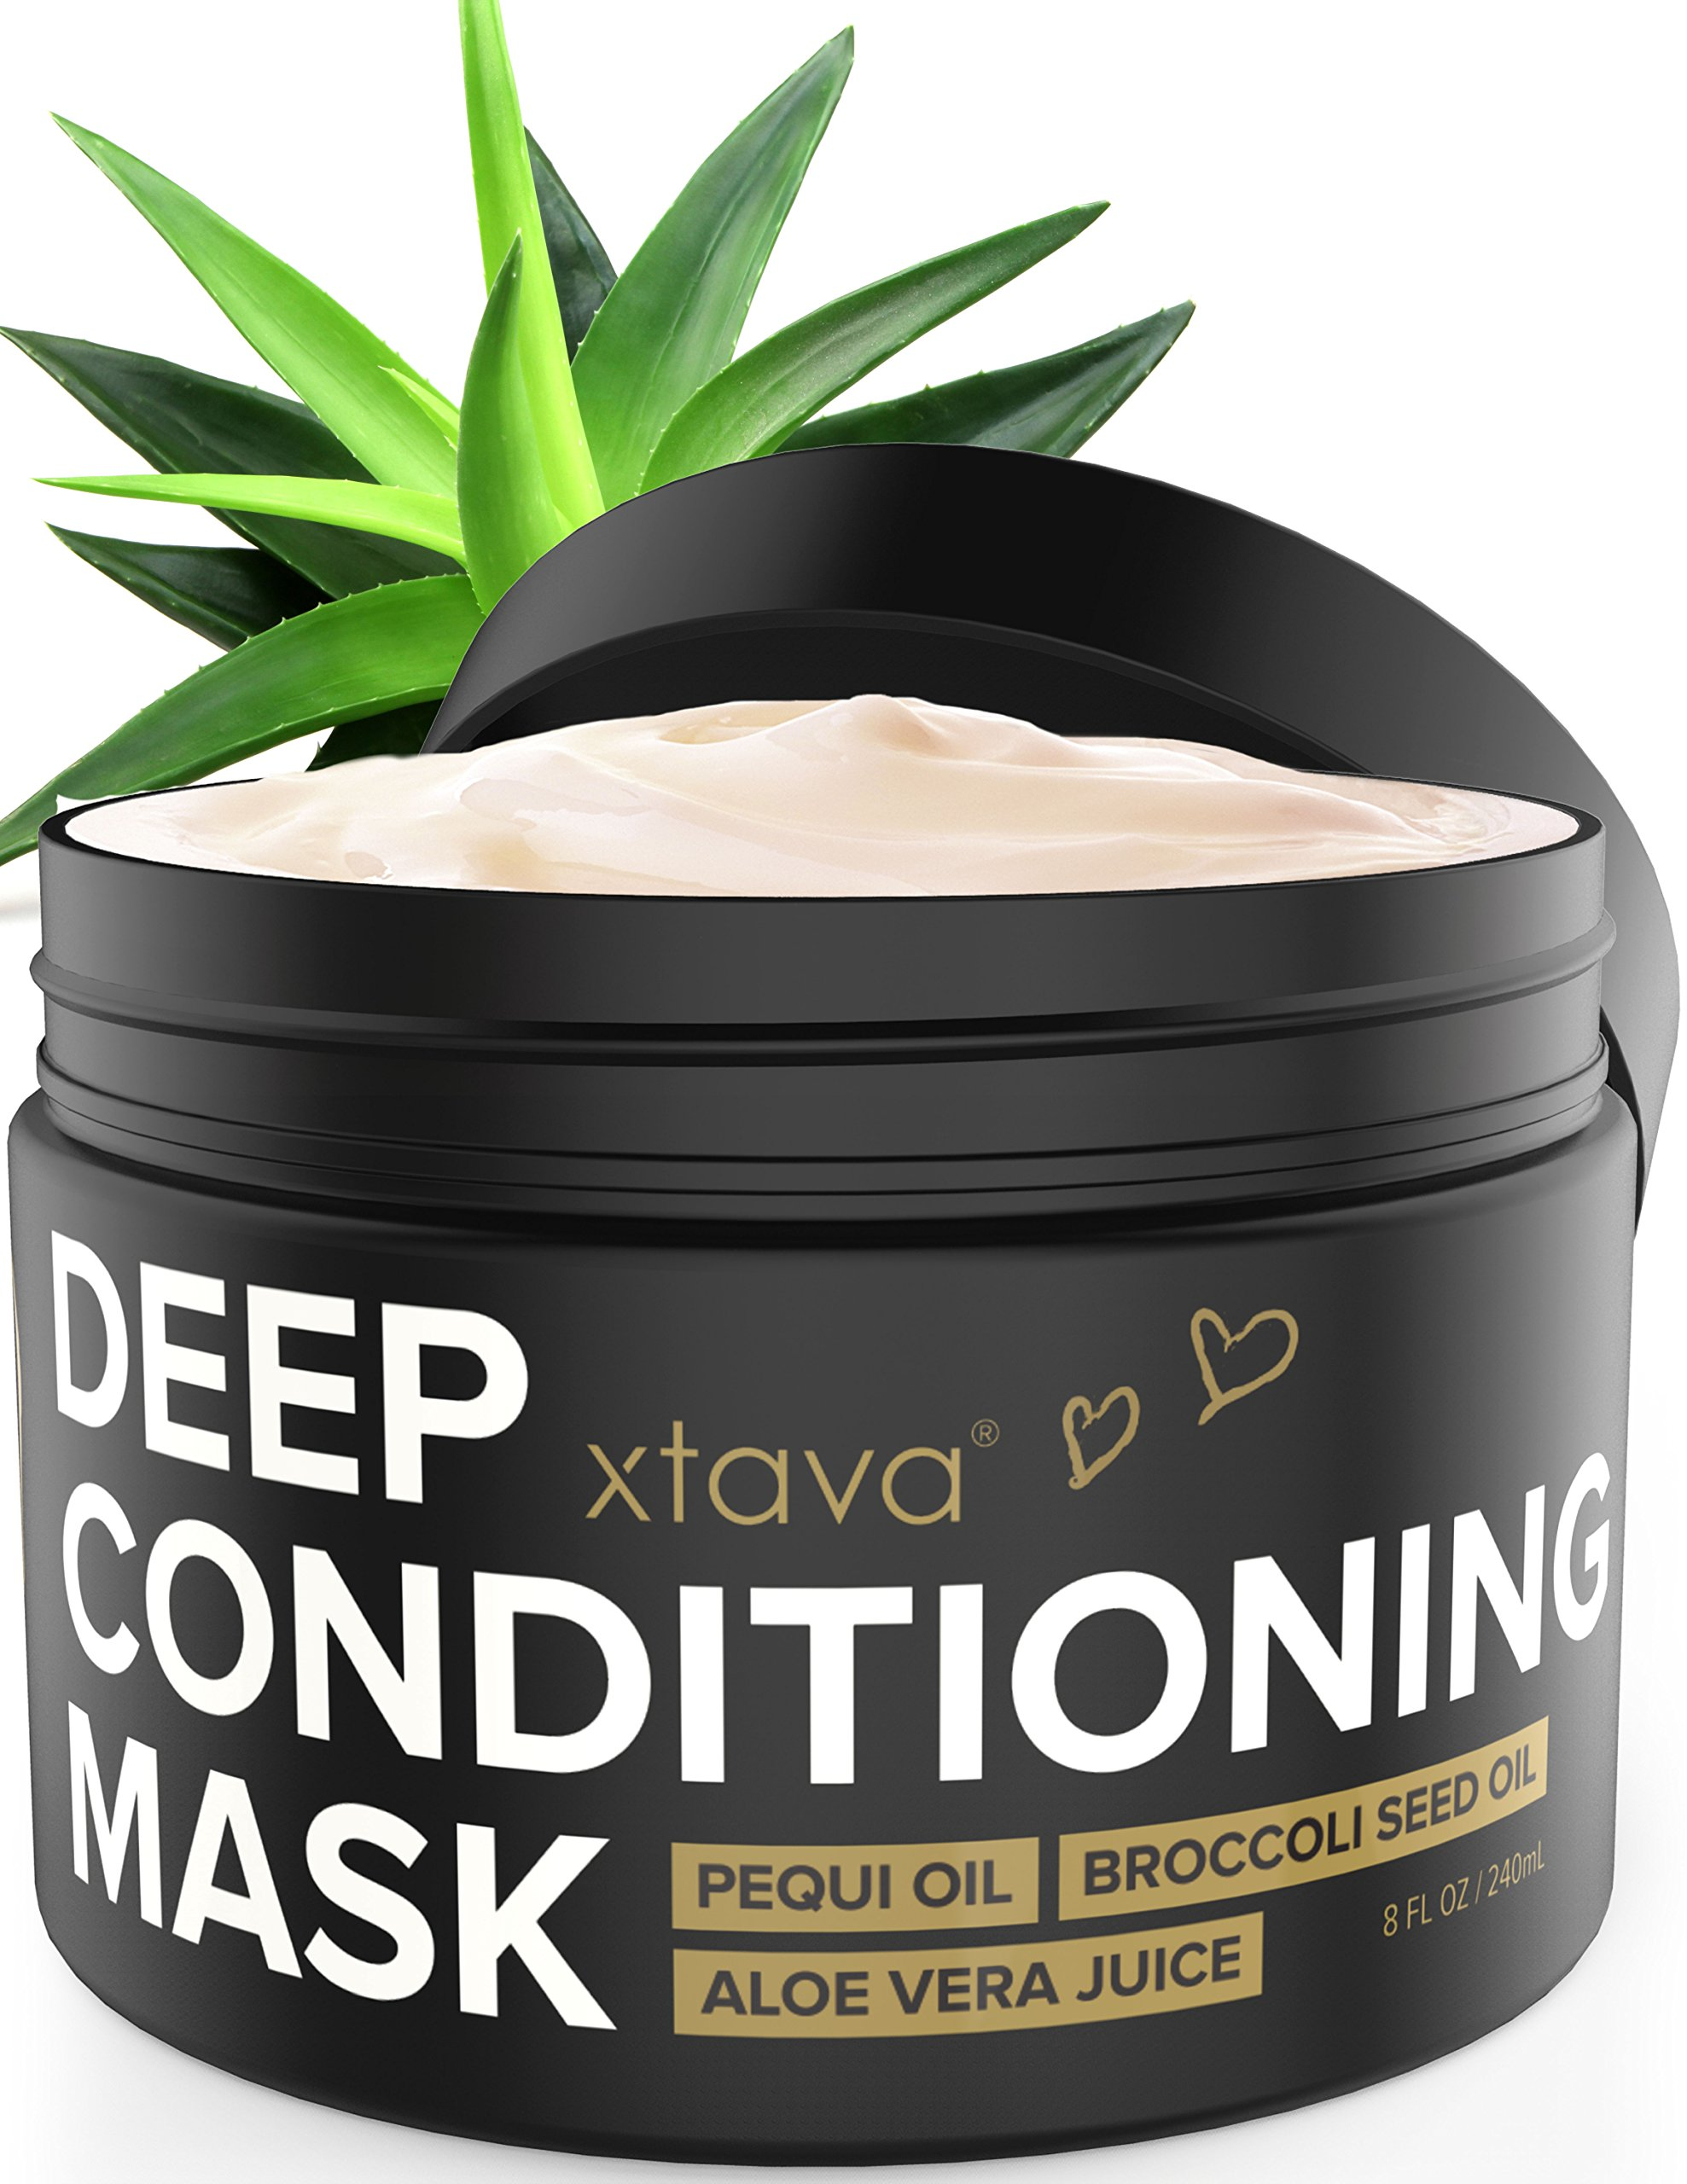 xtava Deep Conditioning Mask Hair Treatment for Dry Damaged Hair 8Fl.Oz - Nourishing Restorative Leave In Conditioner to Repair Split Ends and Damage - Hair Mask Hydrating Moisturizing Cream by xtava